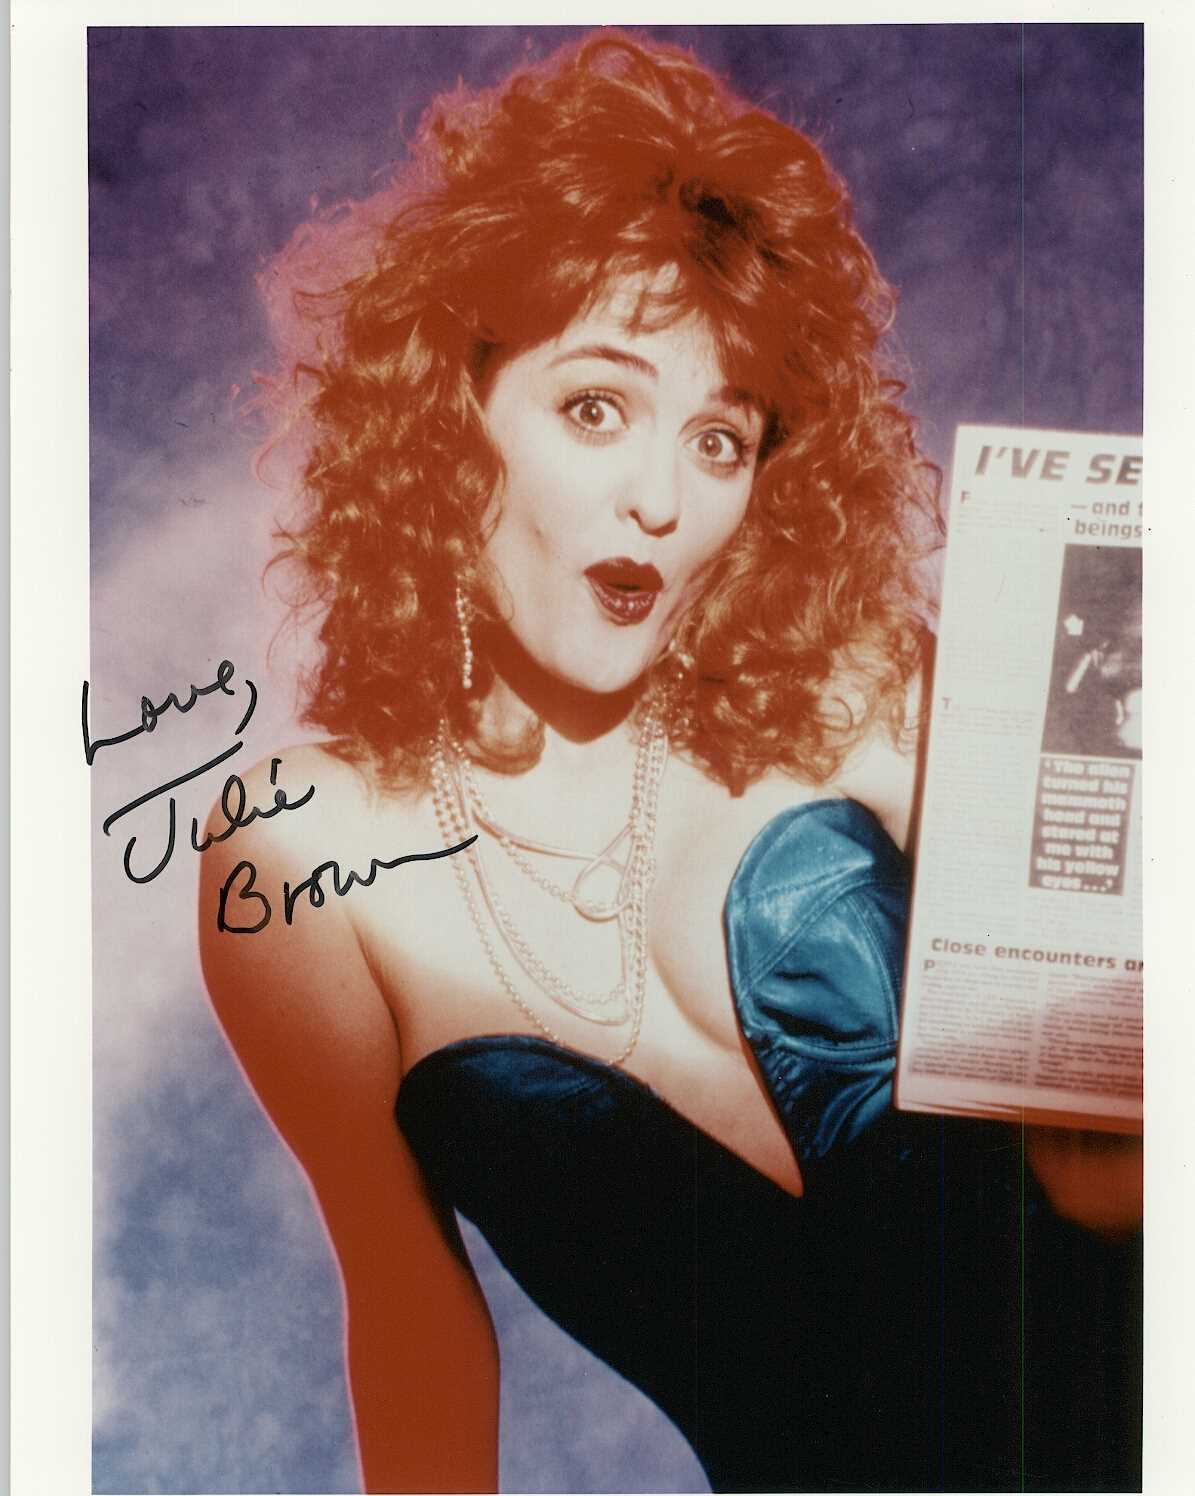 Primary image for Julie Brown Signed Autographed Glossy 8x10 Photo